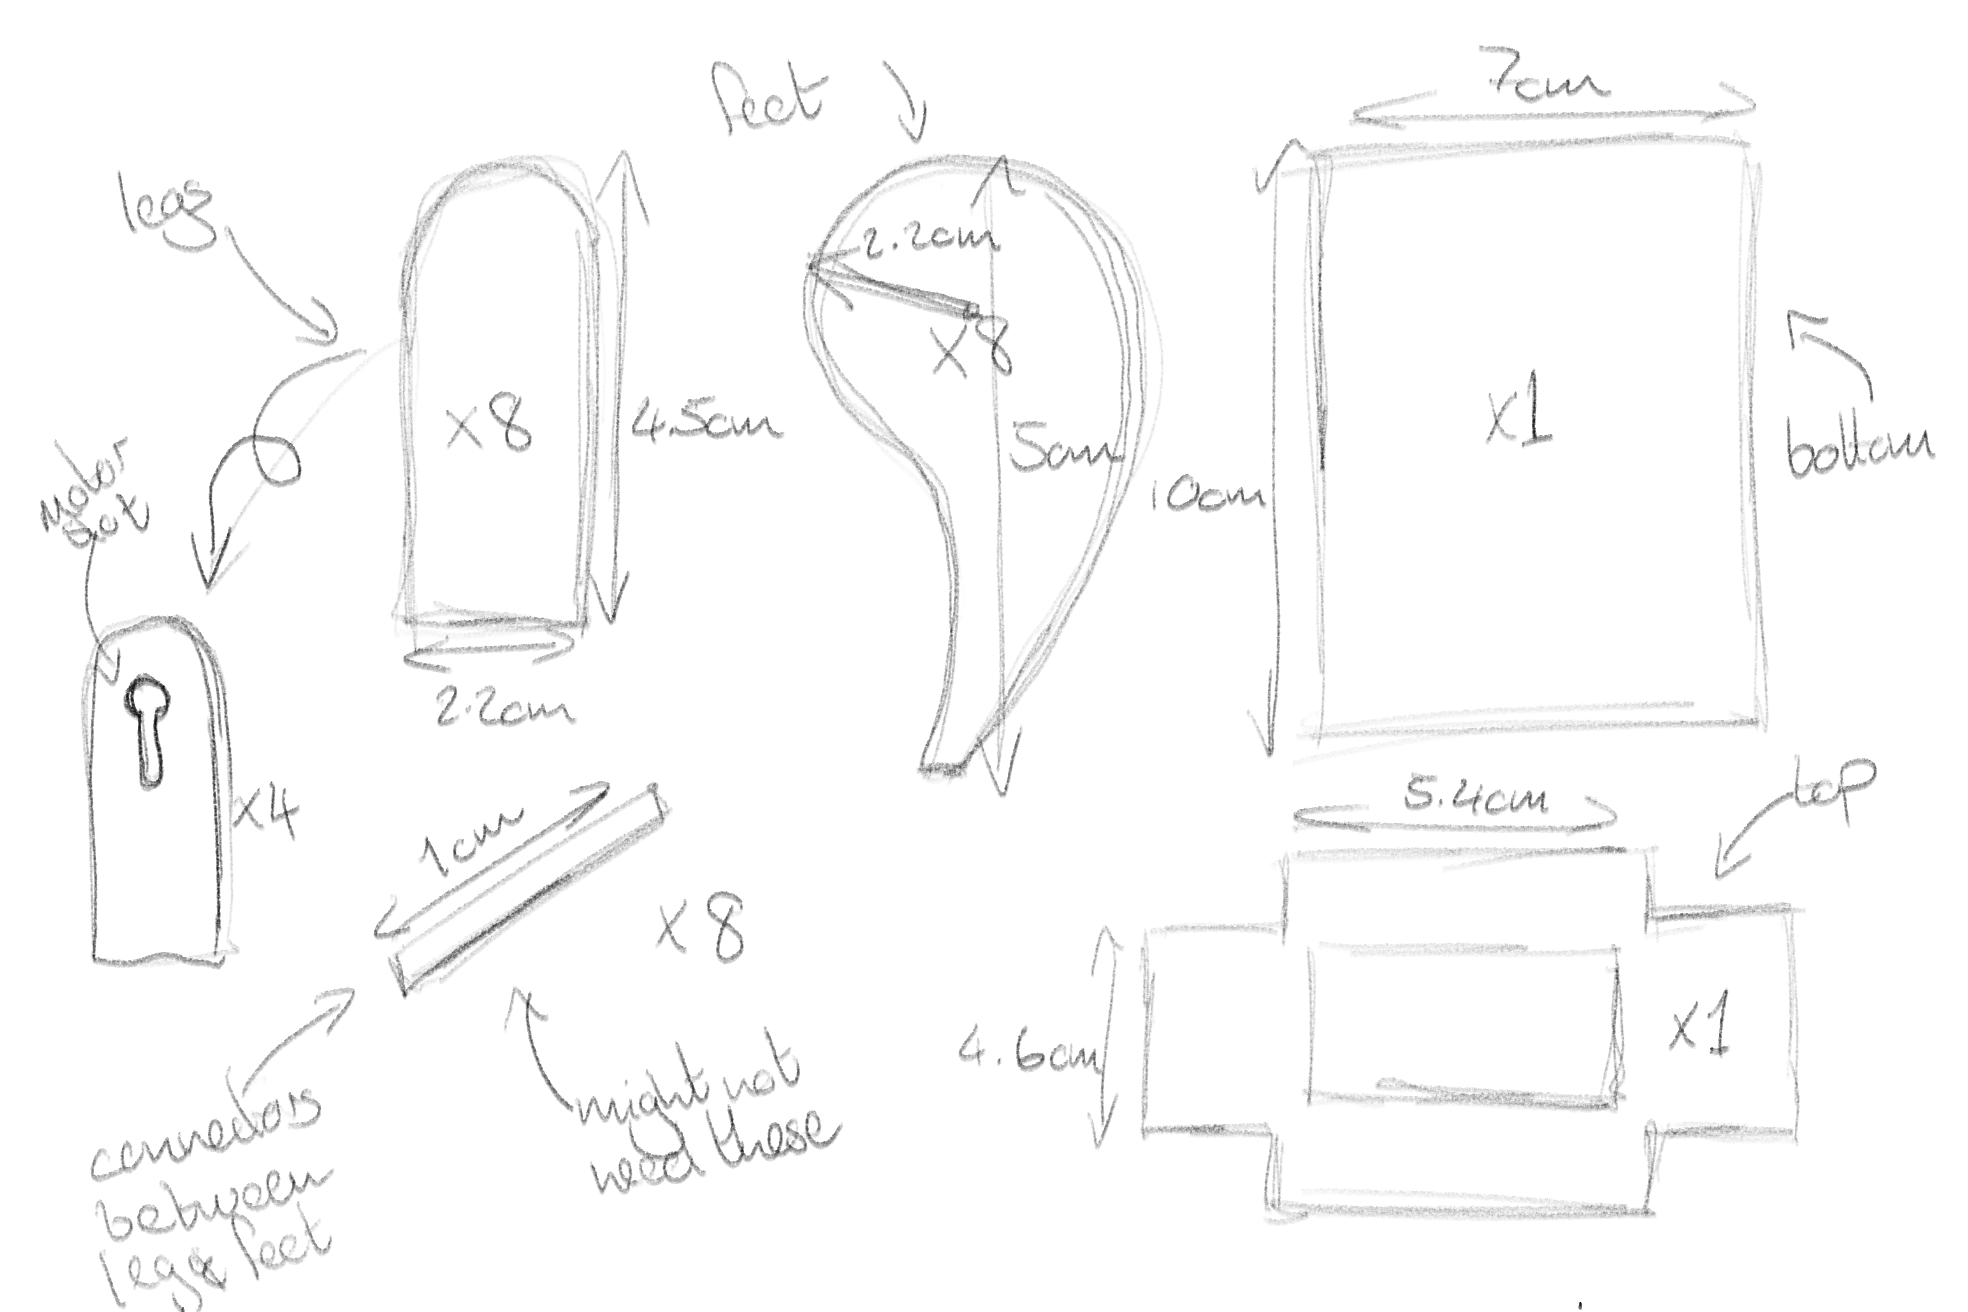 Day 3-4: Measurements and part design